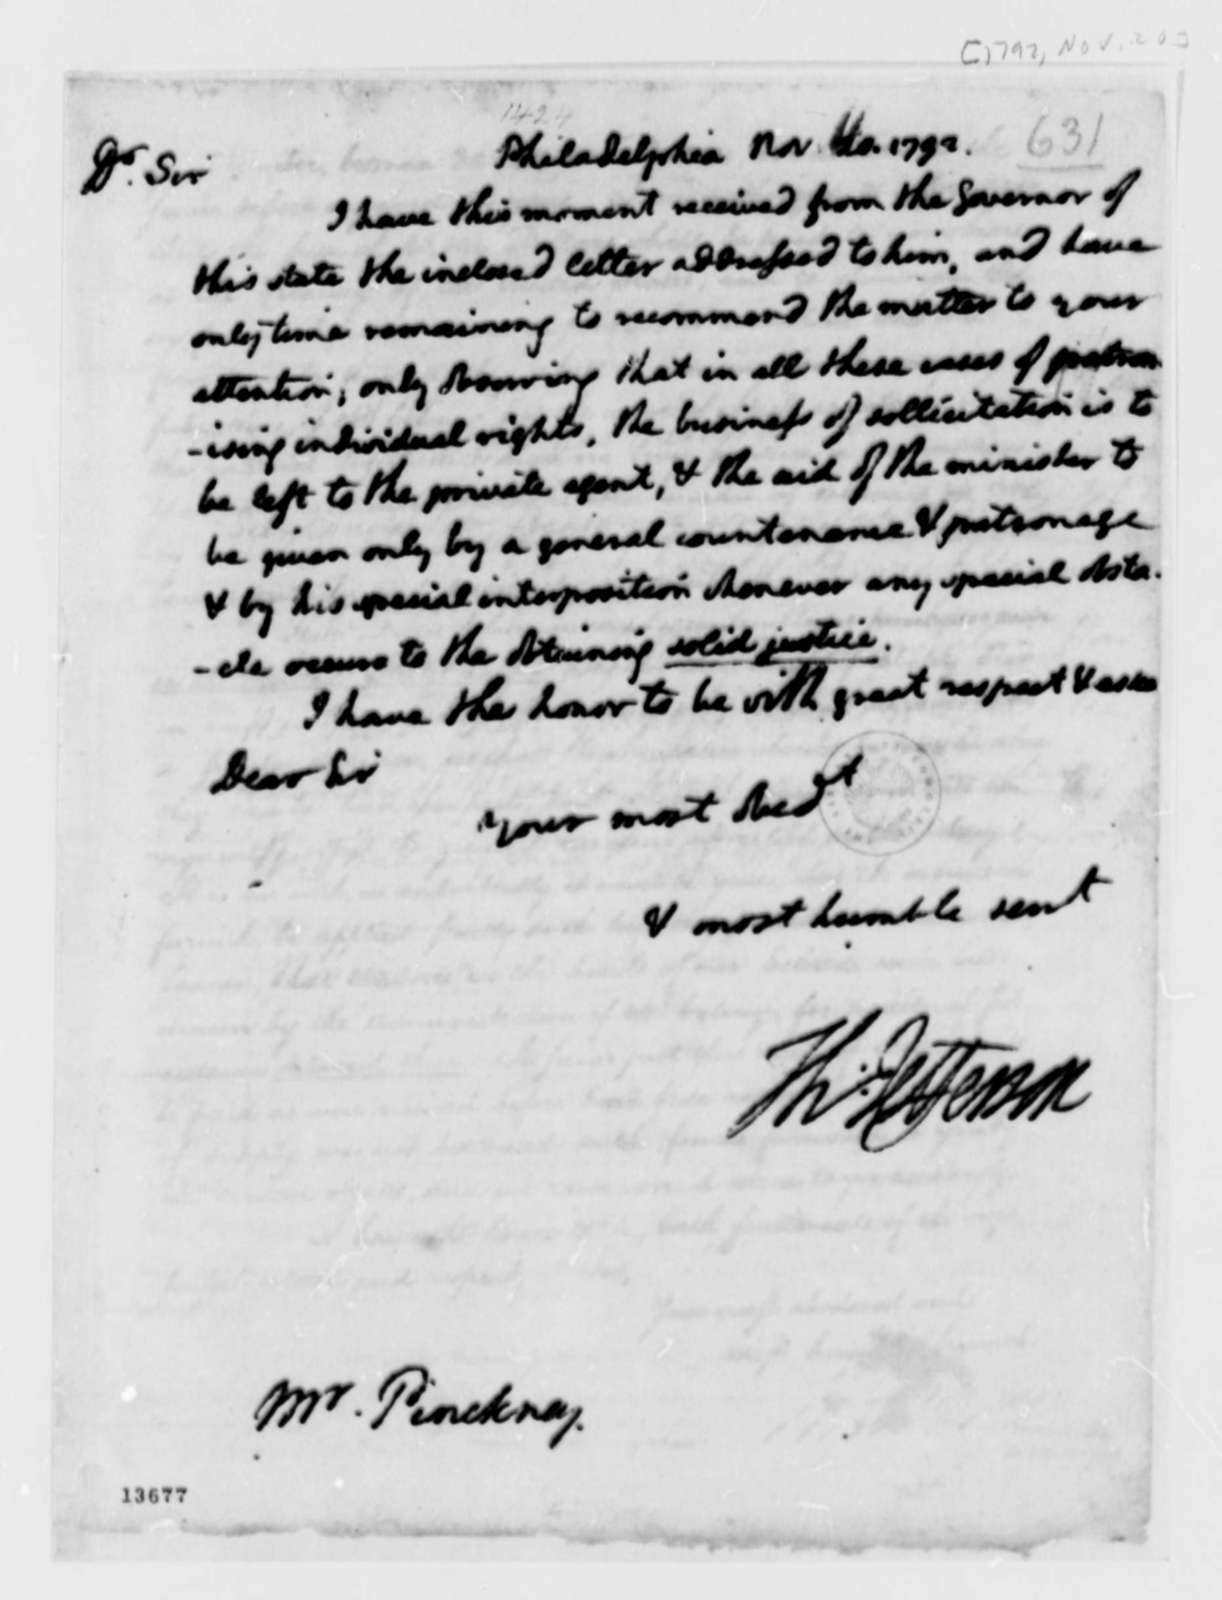 Thomas Pinckney to Thomas Jefferson, November 20, 1792